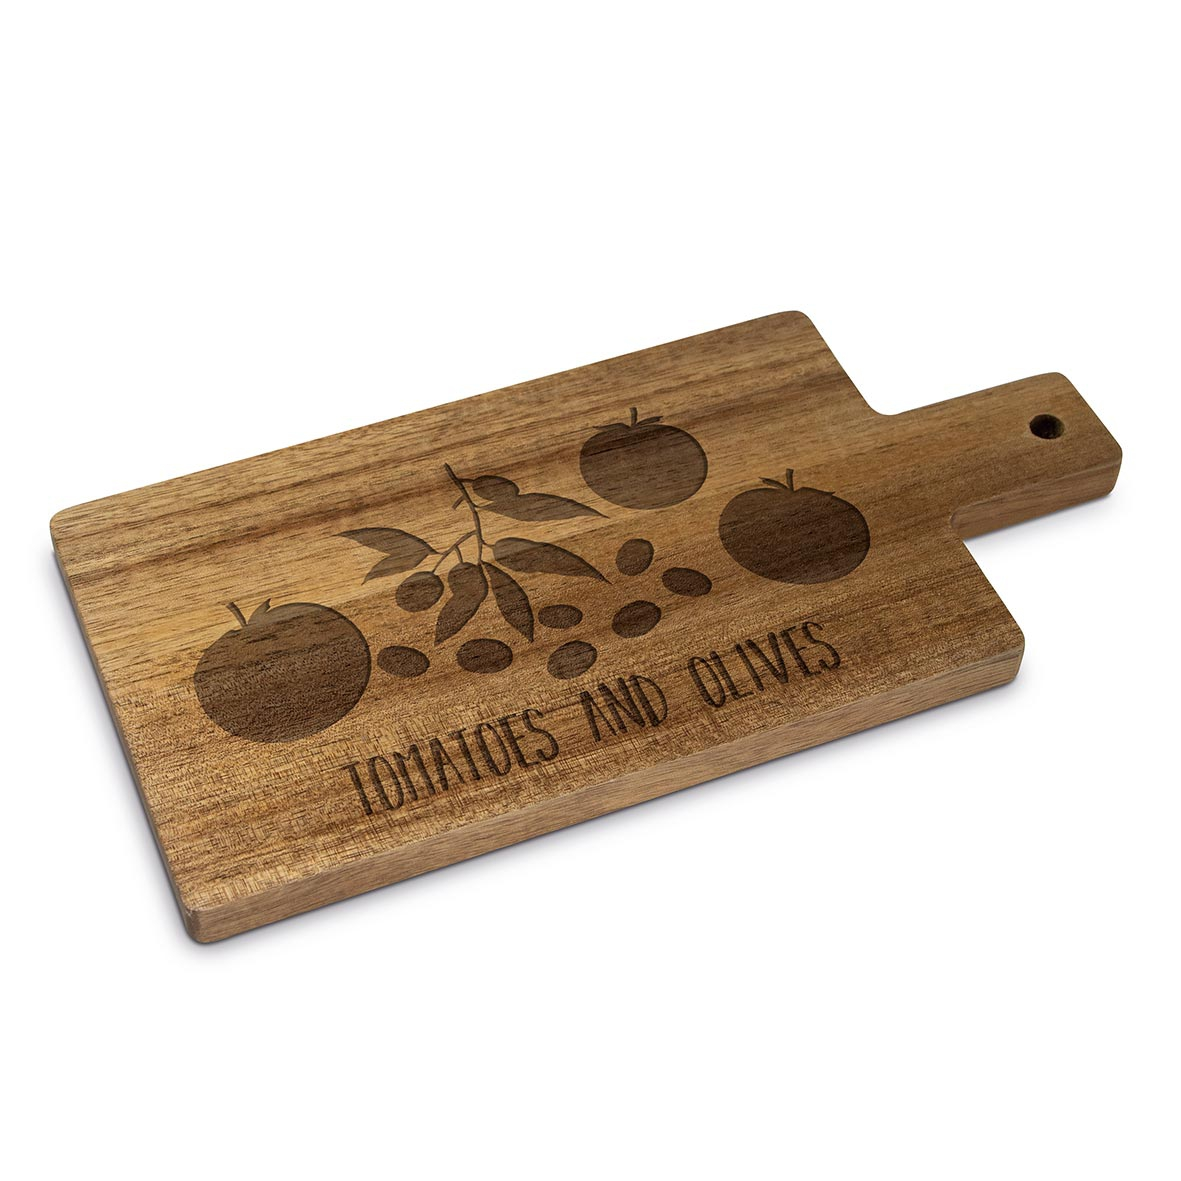 Wooden board - Tomatoes & Olives Wood nature